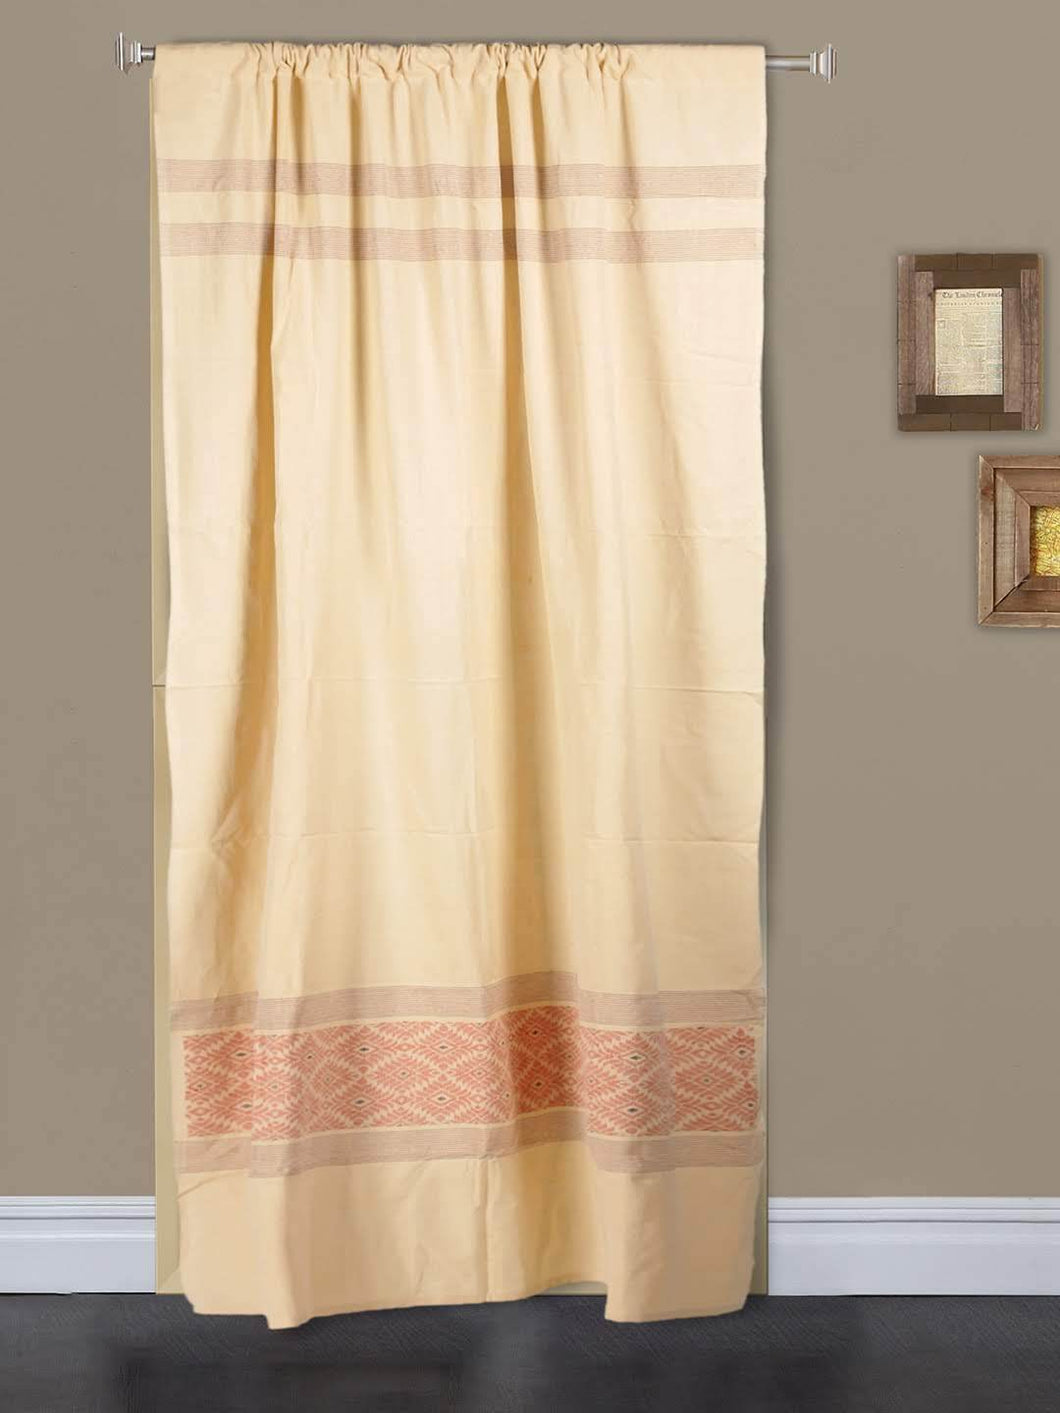 Handloom Cotton Beige Red Rod Pocket Door Curtain - Arteastri